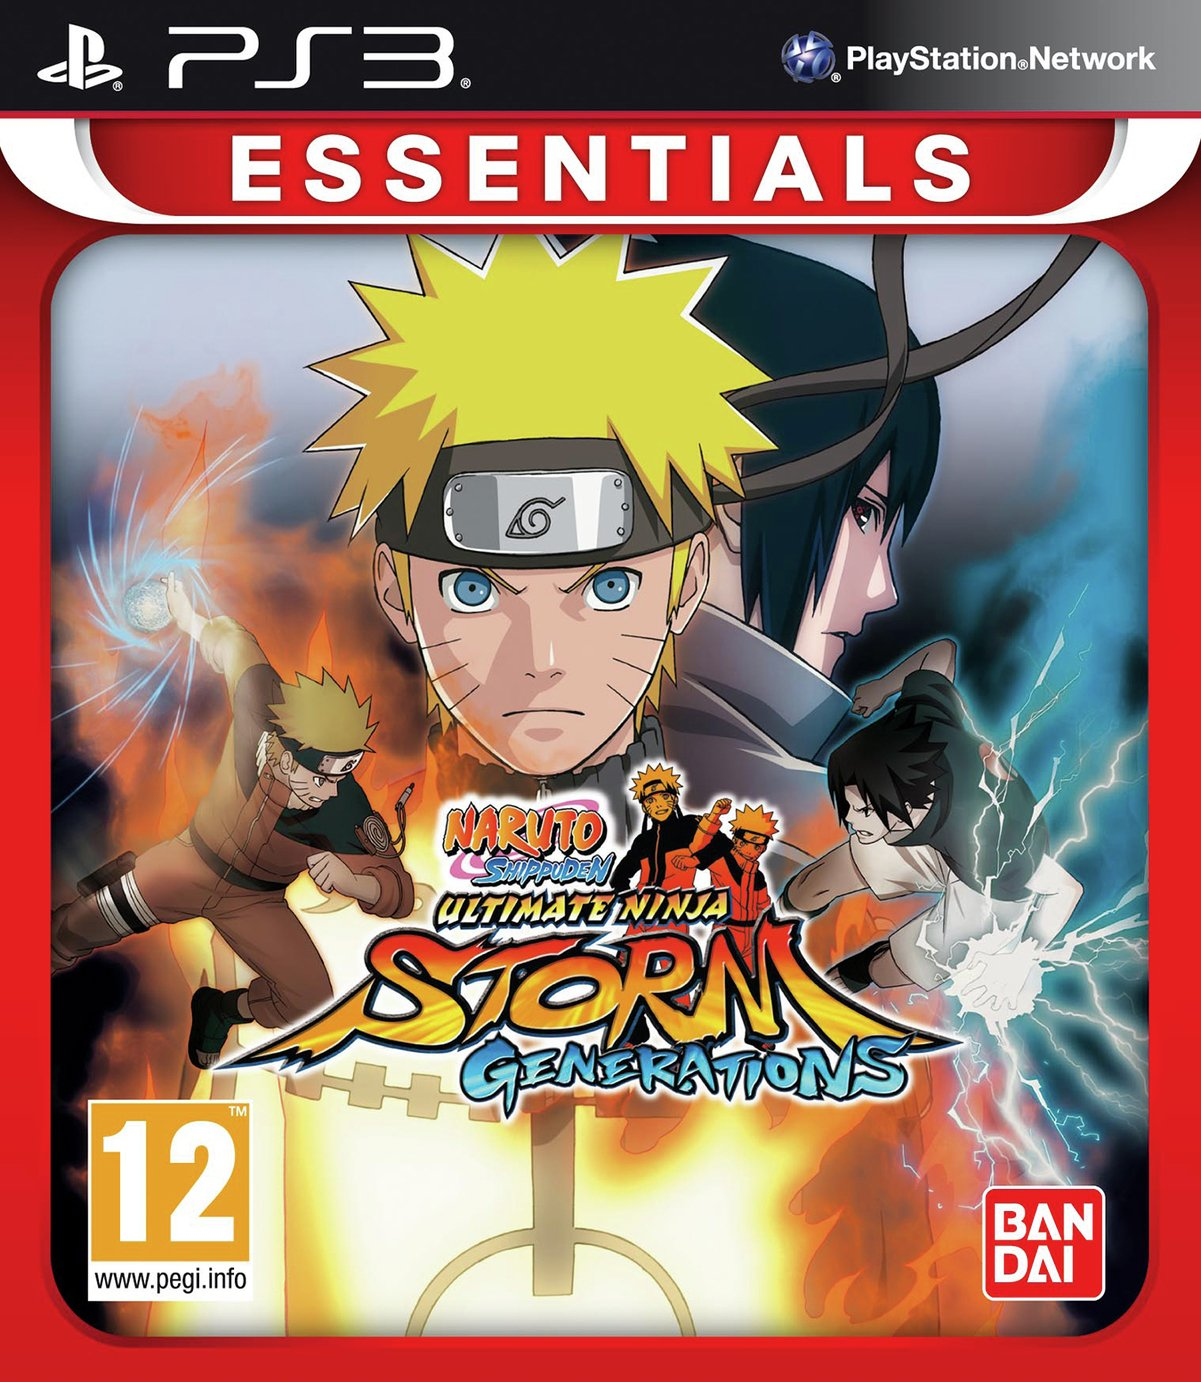 Naruto Shippuden UNS3 Essentials PS3 Game from Naruto